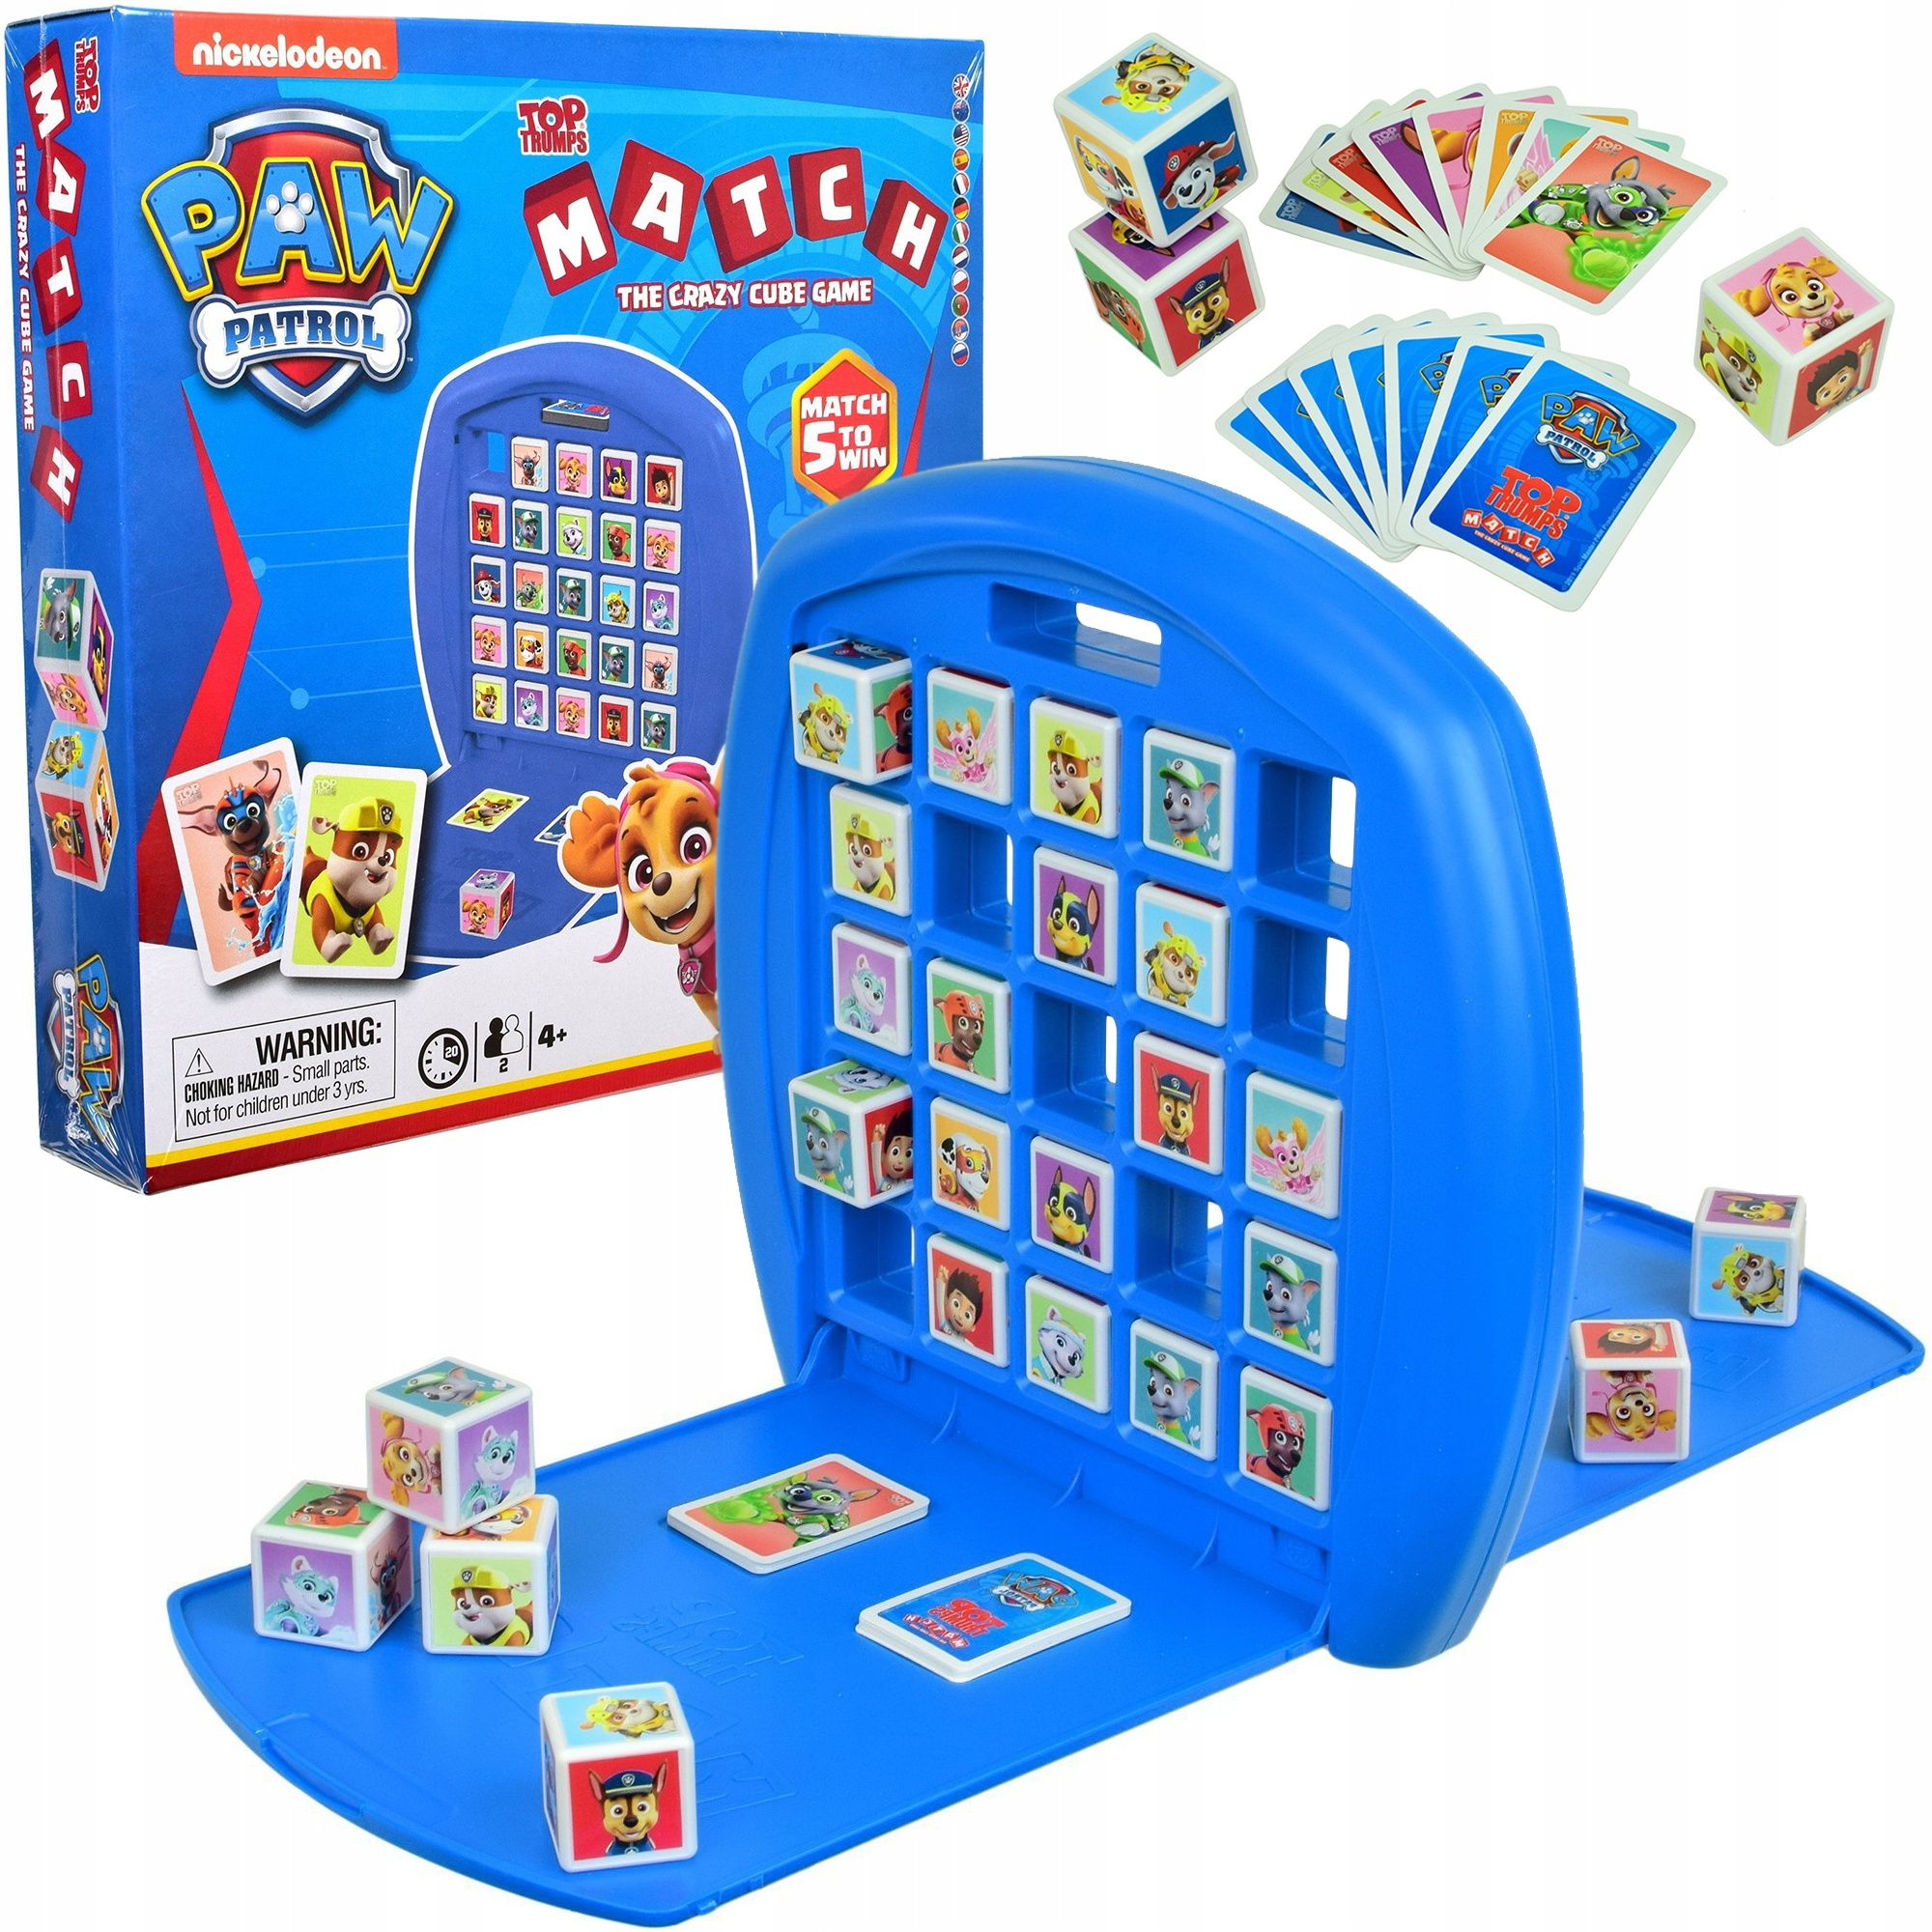 PAW PATROL GAME CRAZY CUBE MATCH